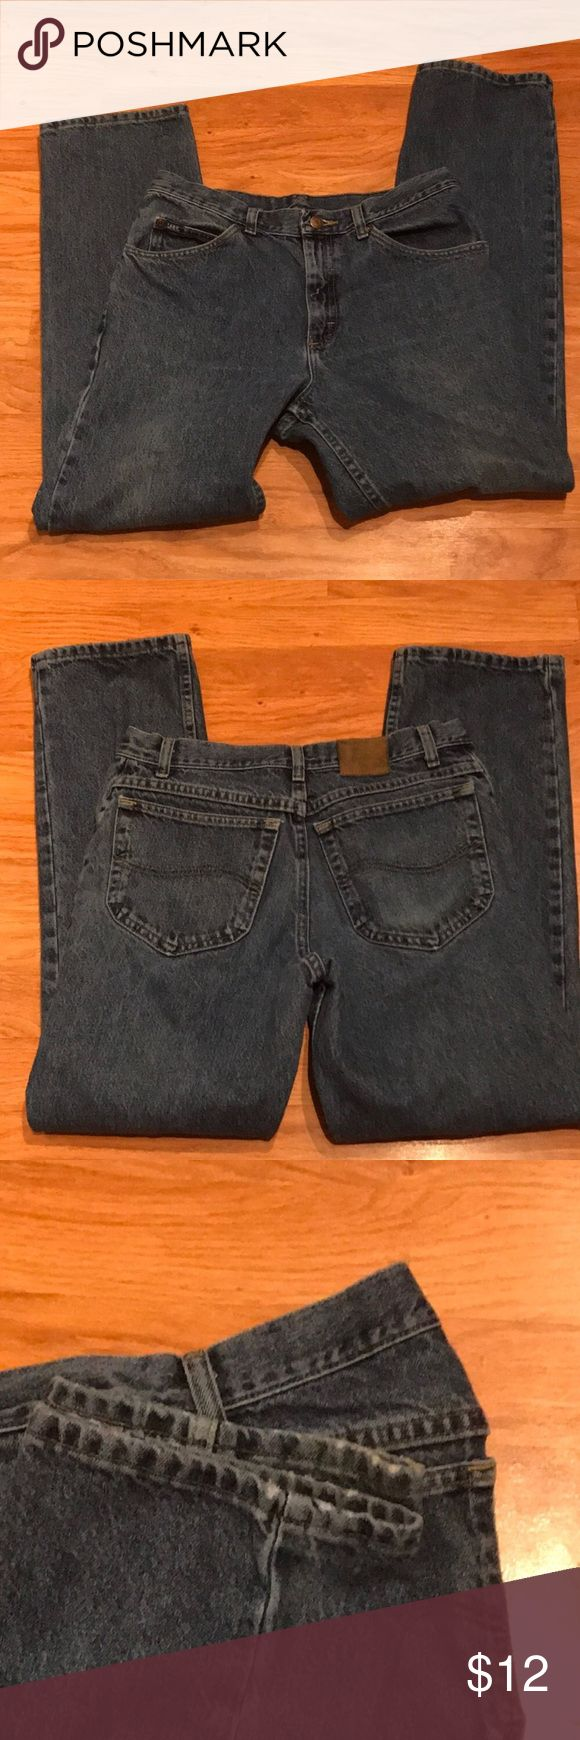 Men's Lee Jeans Men's Lee jeans. Size 32x30. The size tag is faded out, but the jeans are in really good condition.  There is some wear at the bottom hem - shown in pictures. Lee Jeans